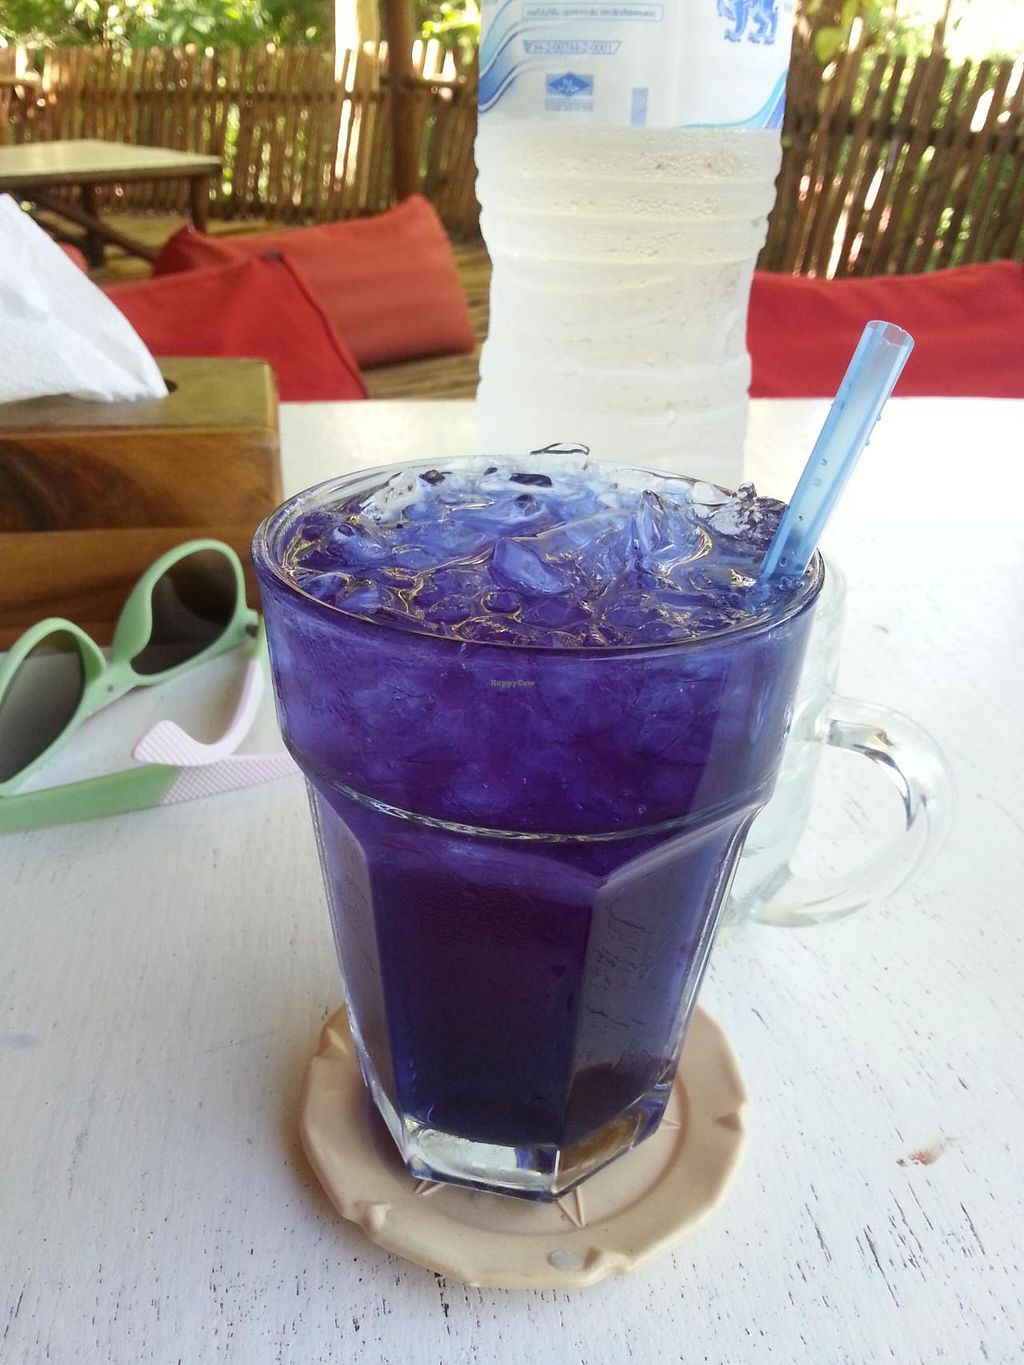 """Photo of Babaloo Restaurant and Uma's Kitchen  by <a href=""""/members/profile/camulla"""">camulla</a> <br/>butterfly pea tea <br/> May 18, 2015  - <a href='/contact/abuse/image/57573/102620'>Report</a>"""